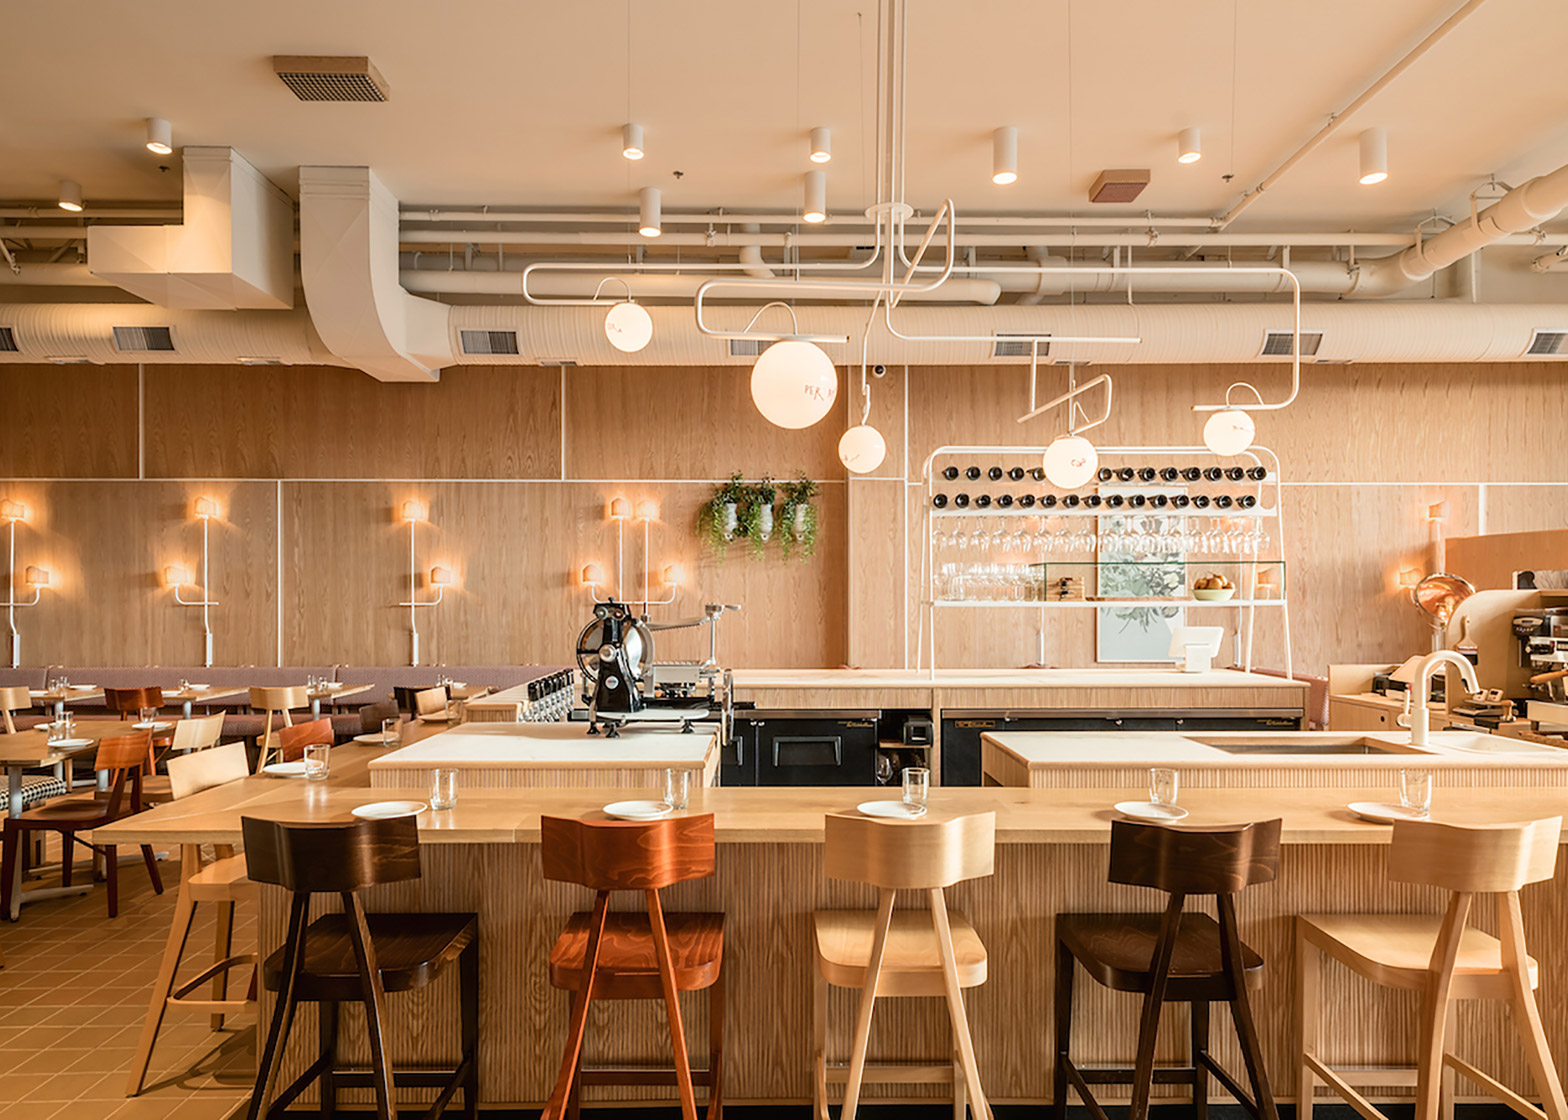 Ste Marie's Vancouver restaurant interior is based on a fictional muse